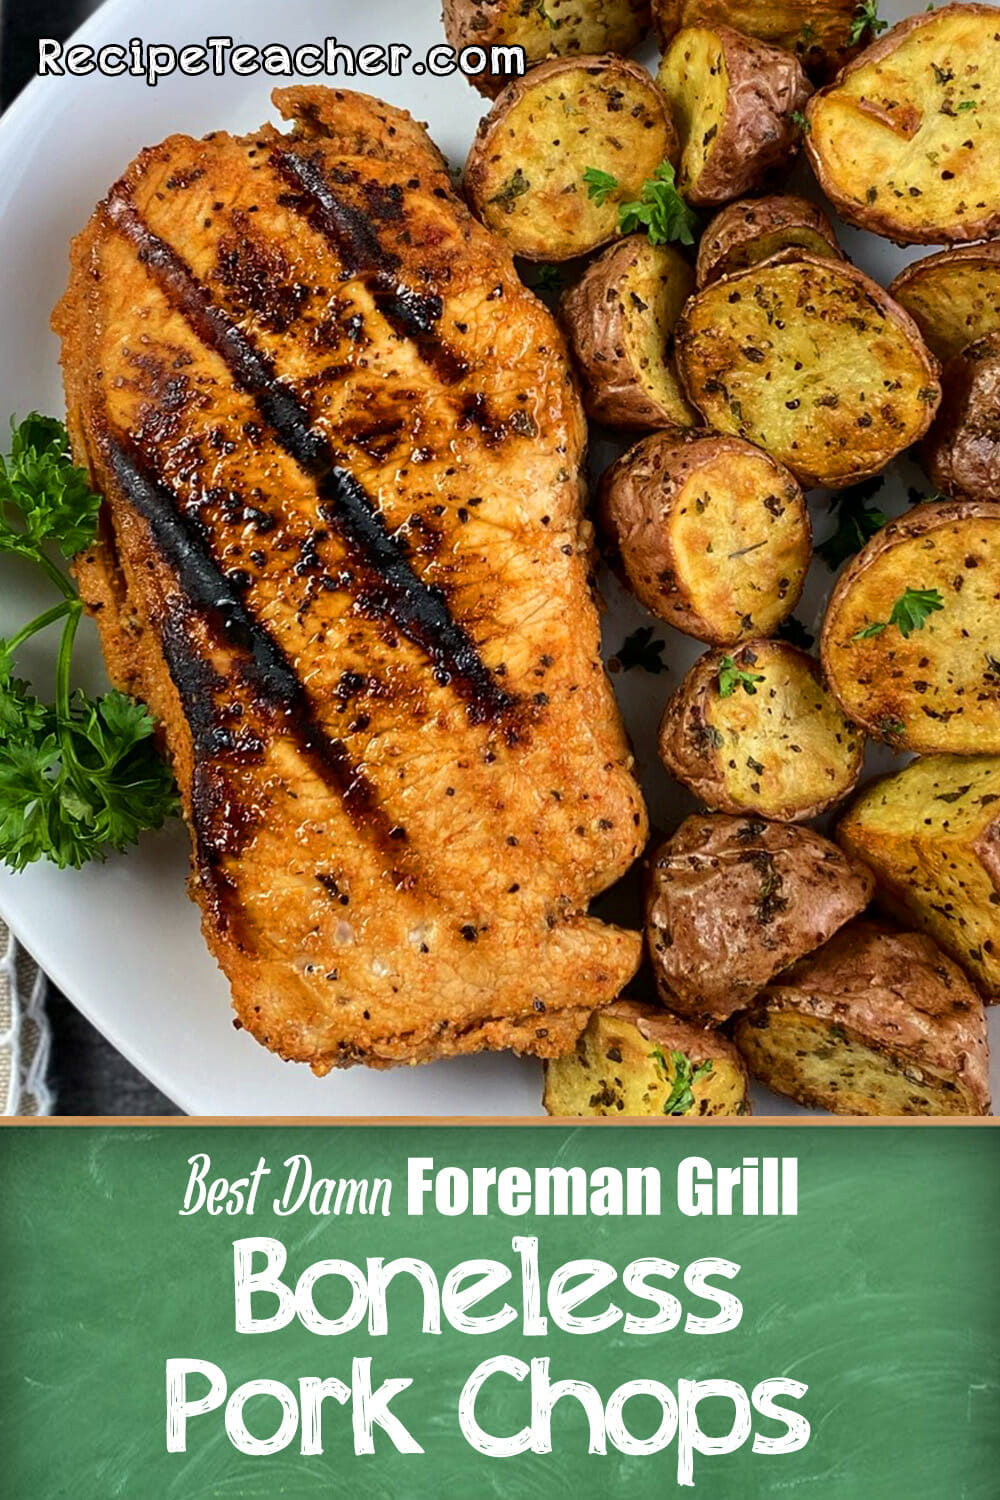 Recipe for George Foreman Grill pork chops